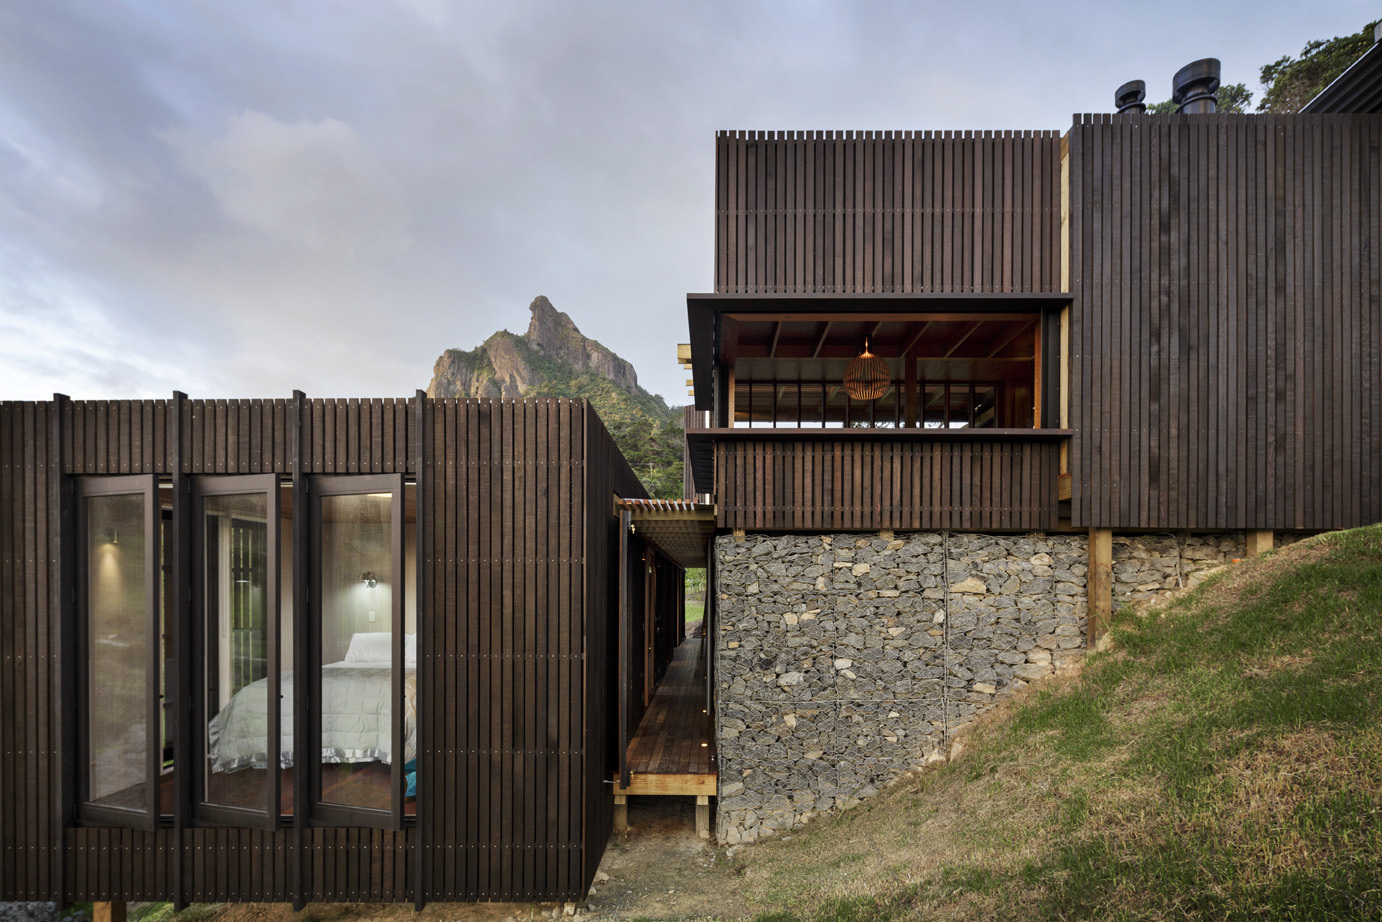 Castle rock house by herbst architects in whangarei new for Castle architecture design